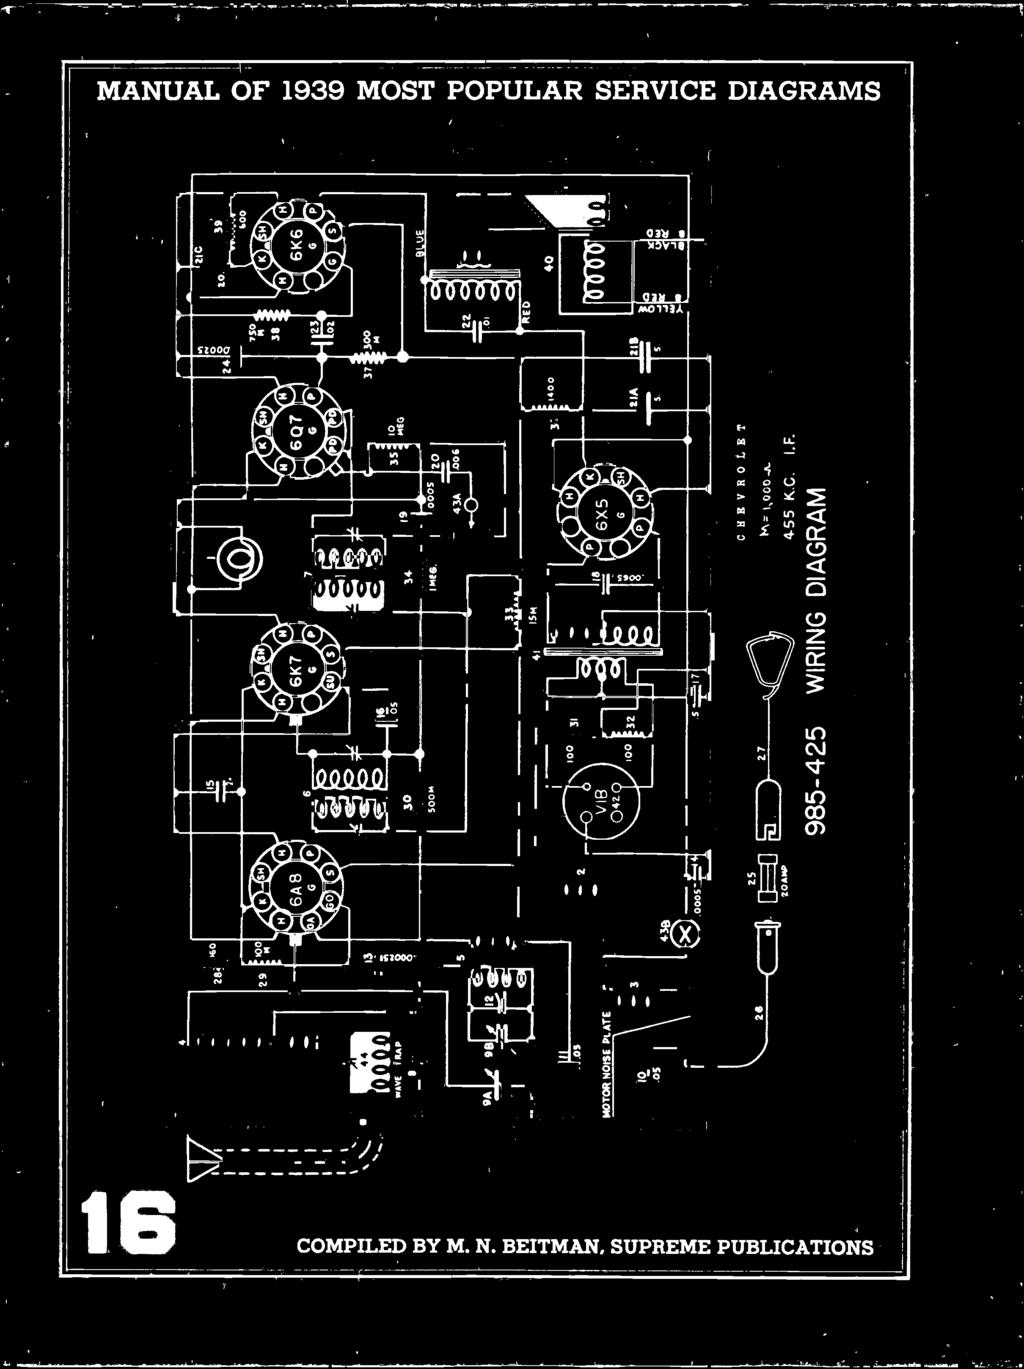 Most Often Needed Radio Diagrams And Servicing Information Mau Wiring Diagram 18 4 55 Kc If